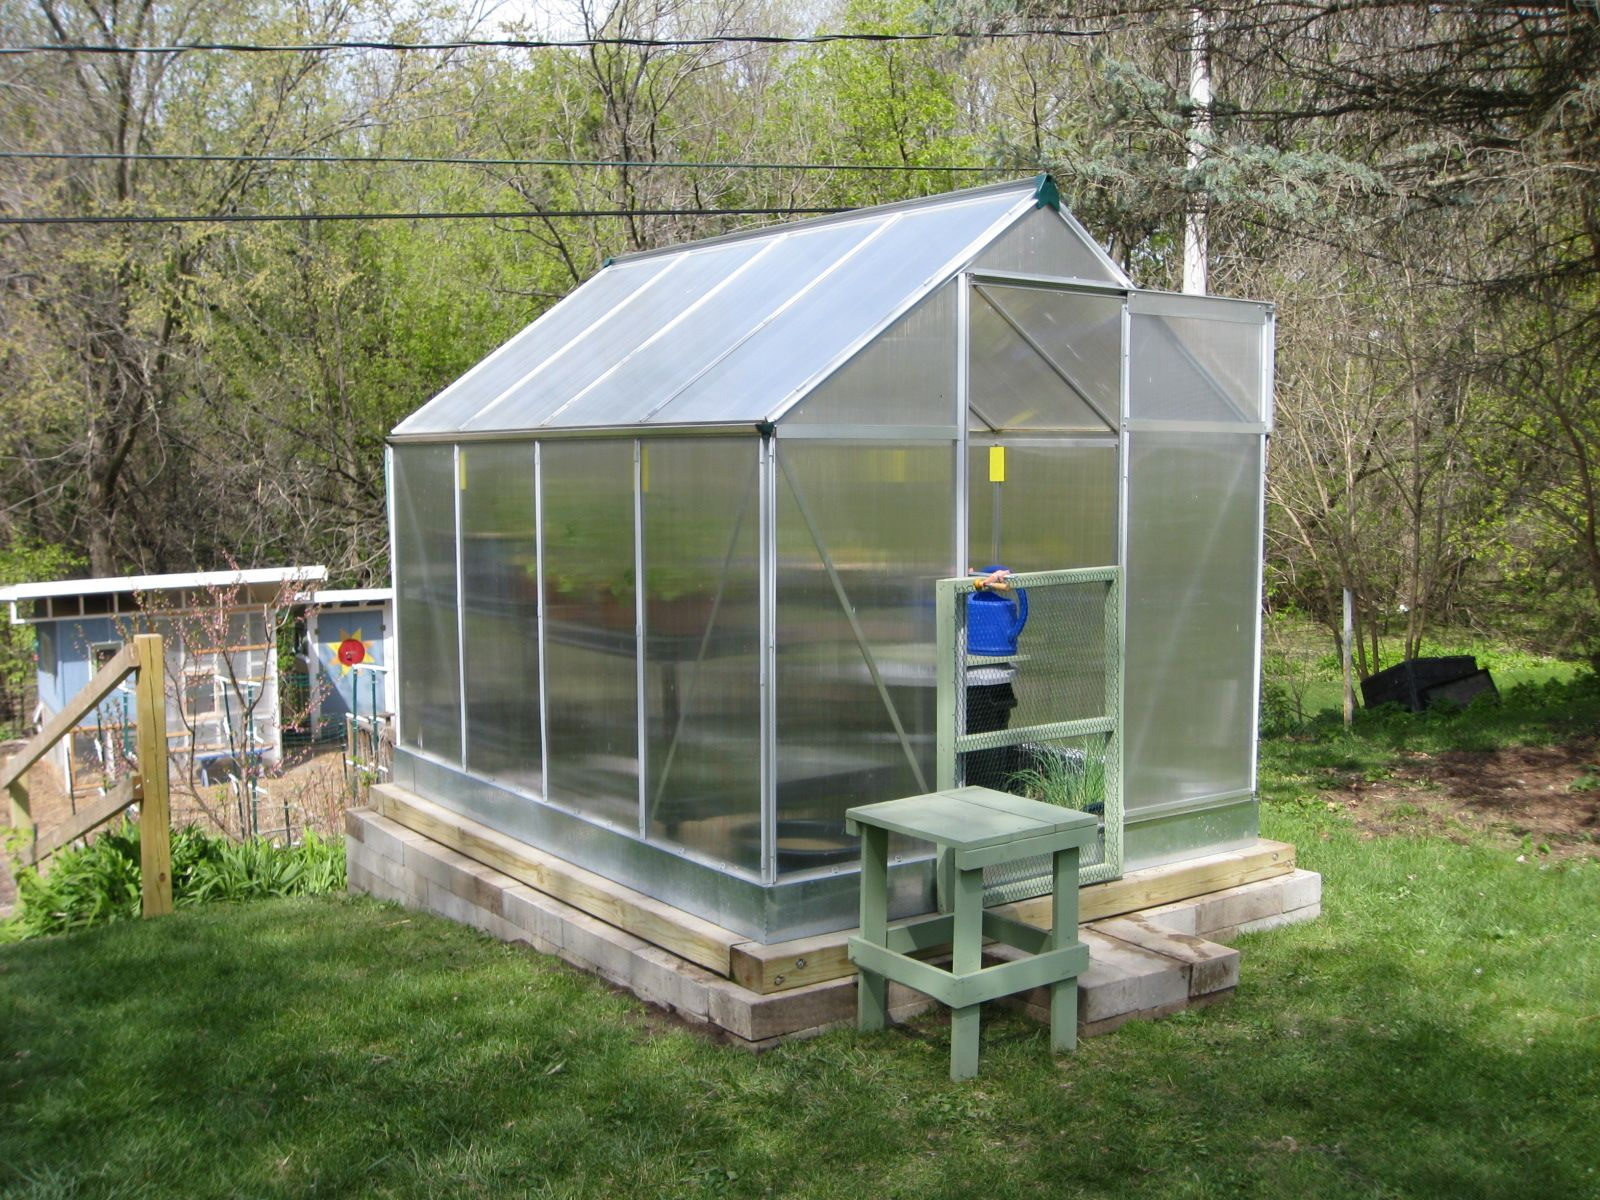 How to build a greenhouse made of polycarbonate with your own hands: highlights